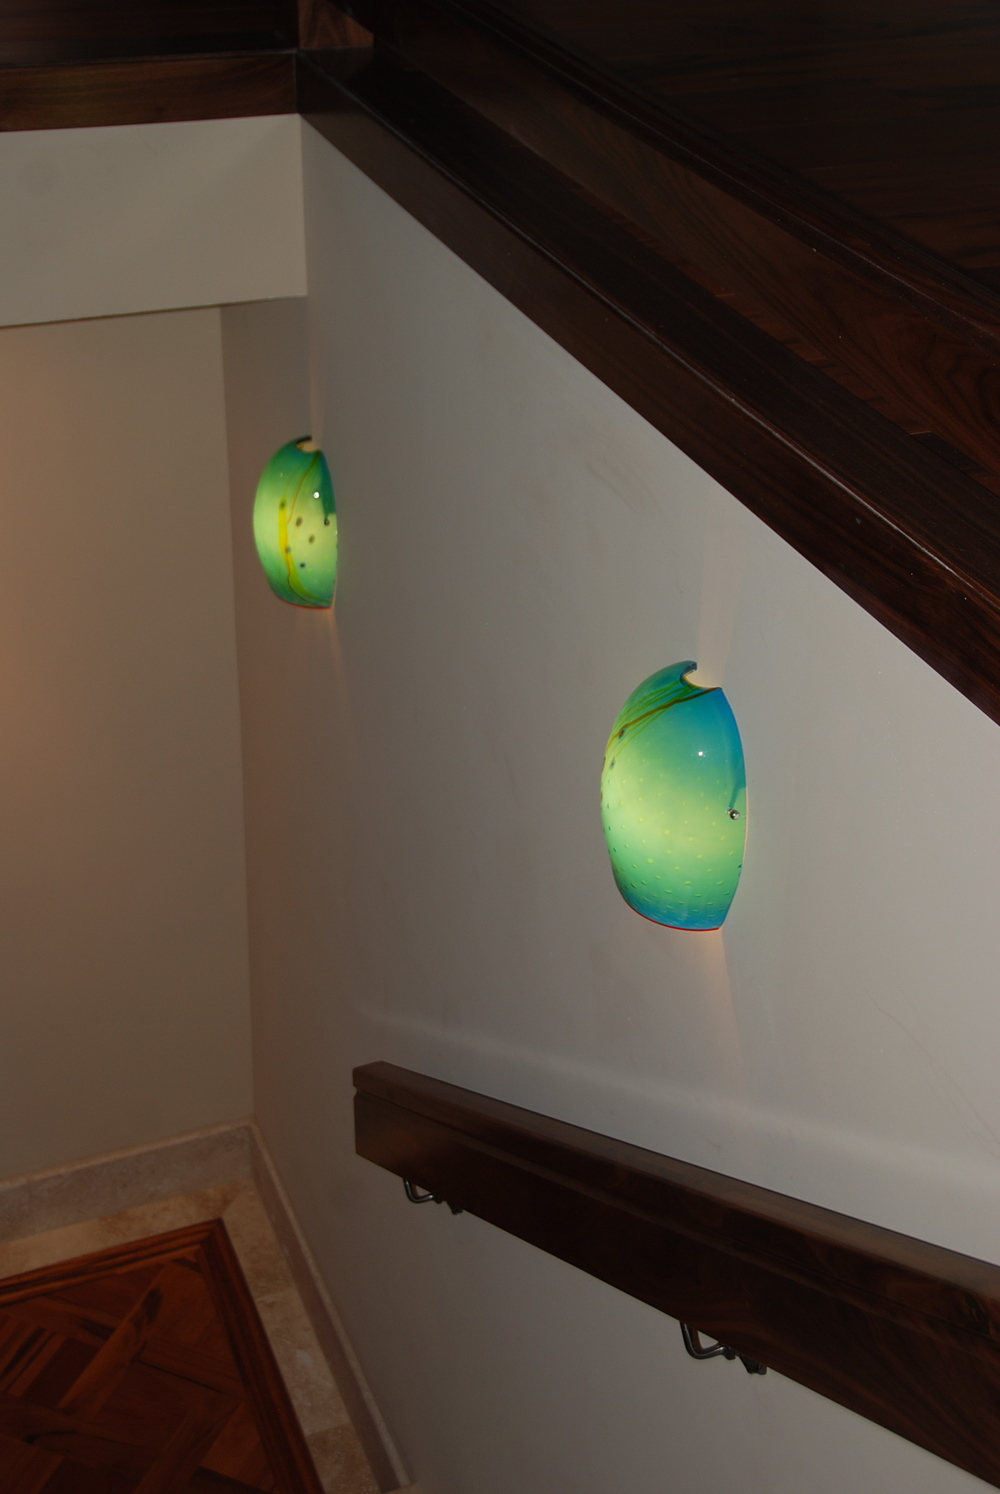 Aquarium Wall Sconce Flush Holes at top and bottom